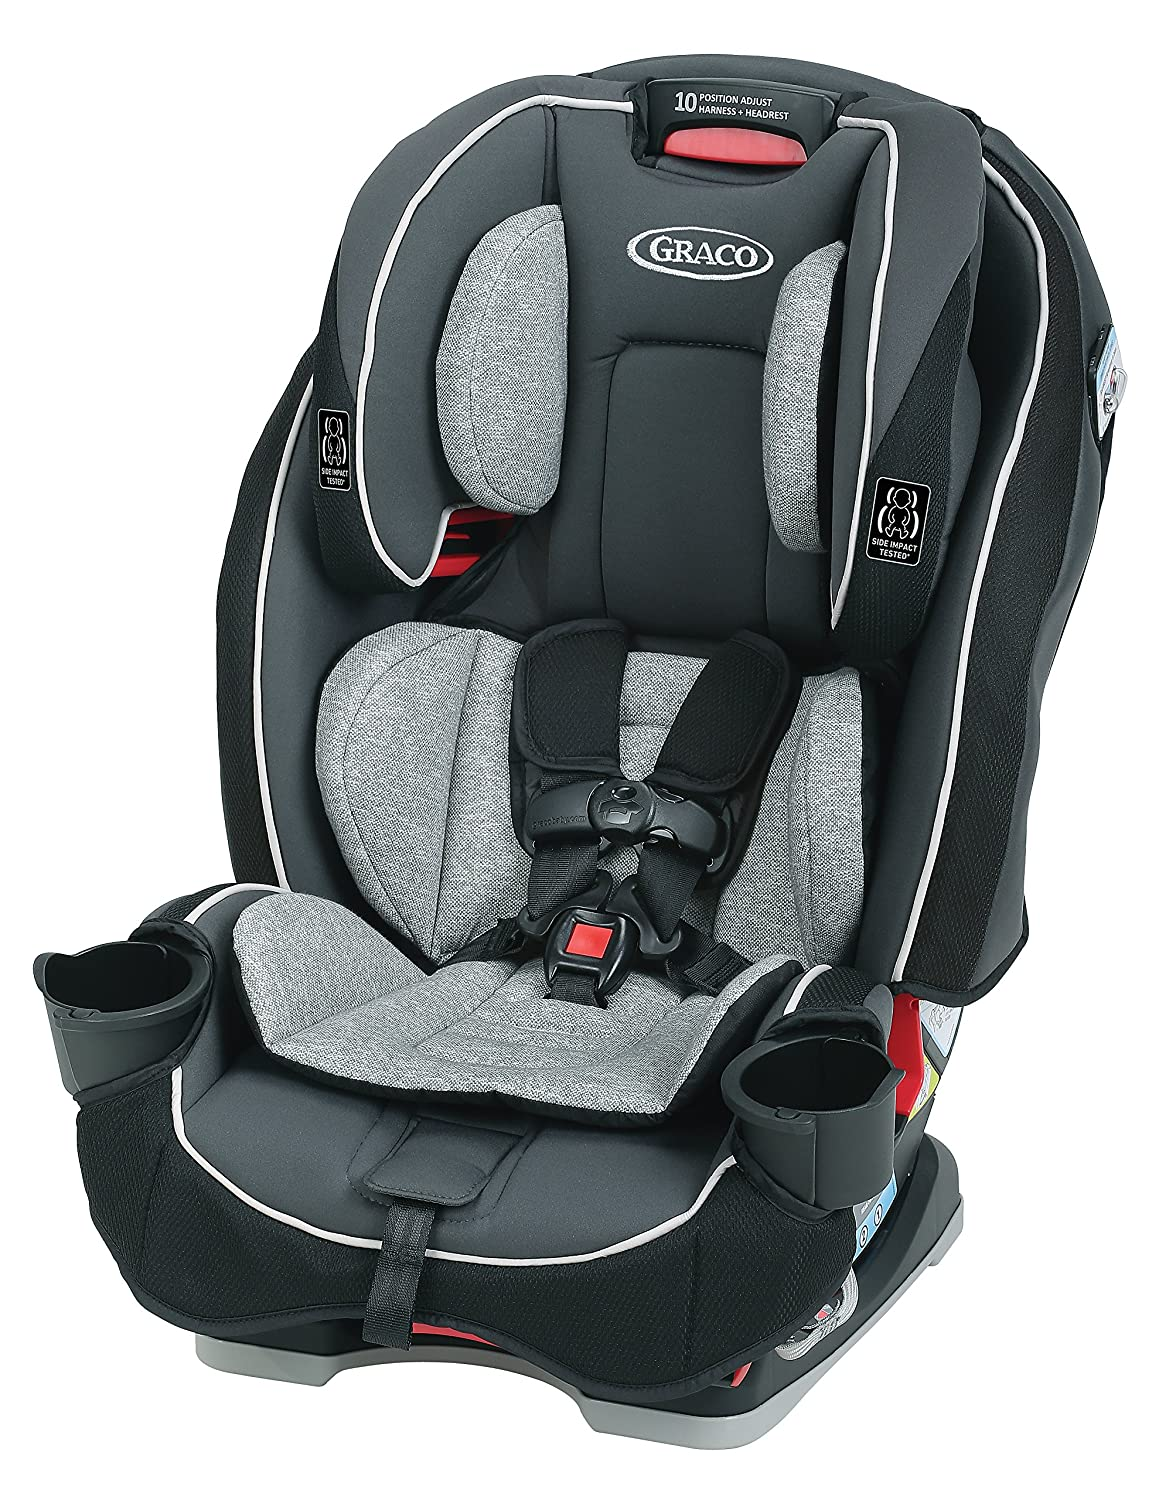 <strong>Graco Slimfit 3 in 1 Car Seat</strong>